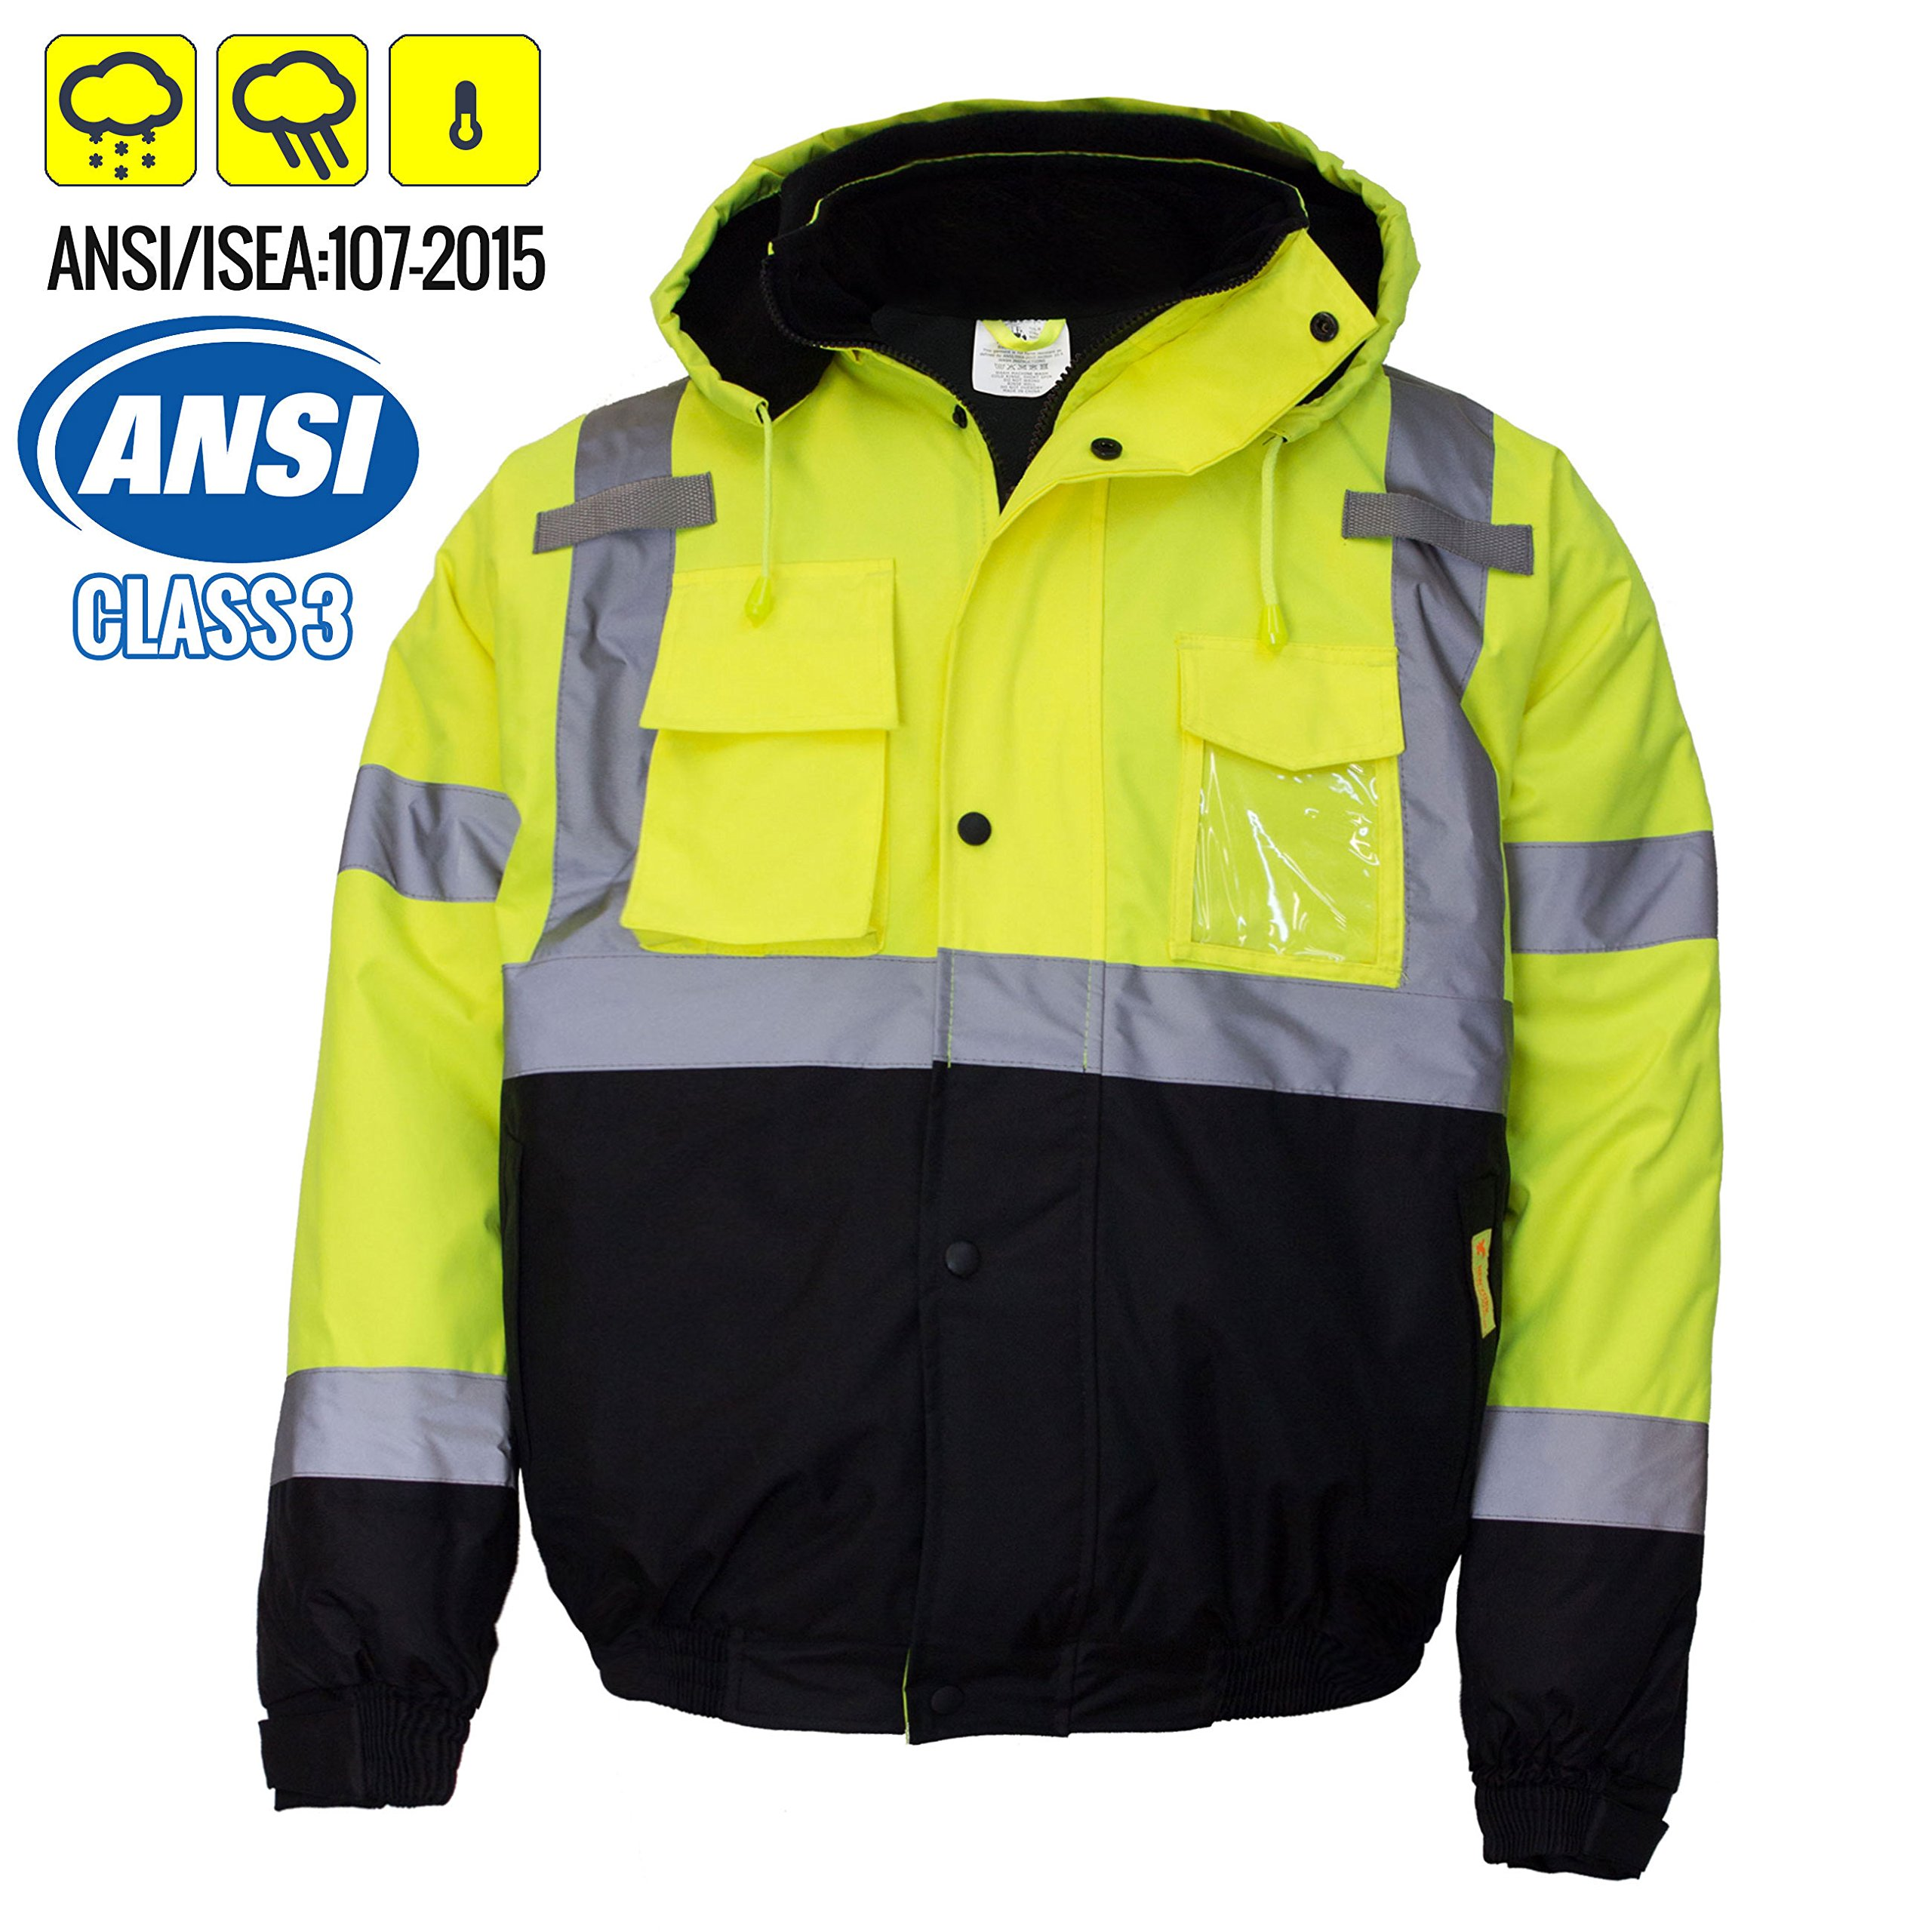 New York Hi-Viz Workwear WJ9012-2XL Men's ANSI Class 3 High Visibility Bomber Safety Jacket, Waterproof (2XL, Lime)